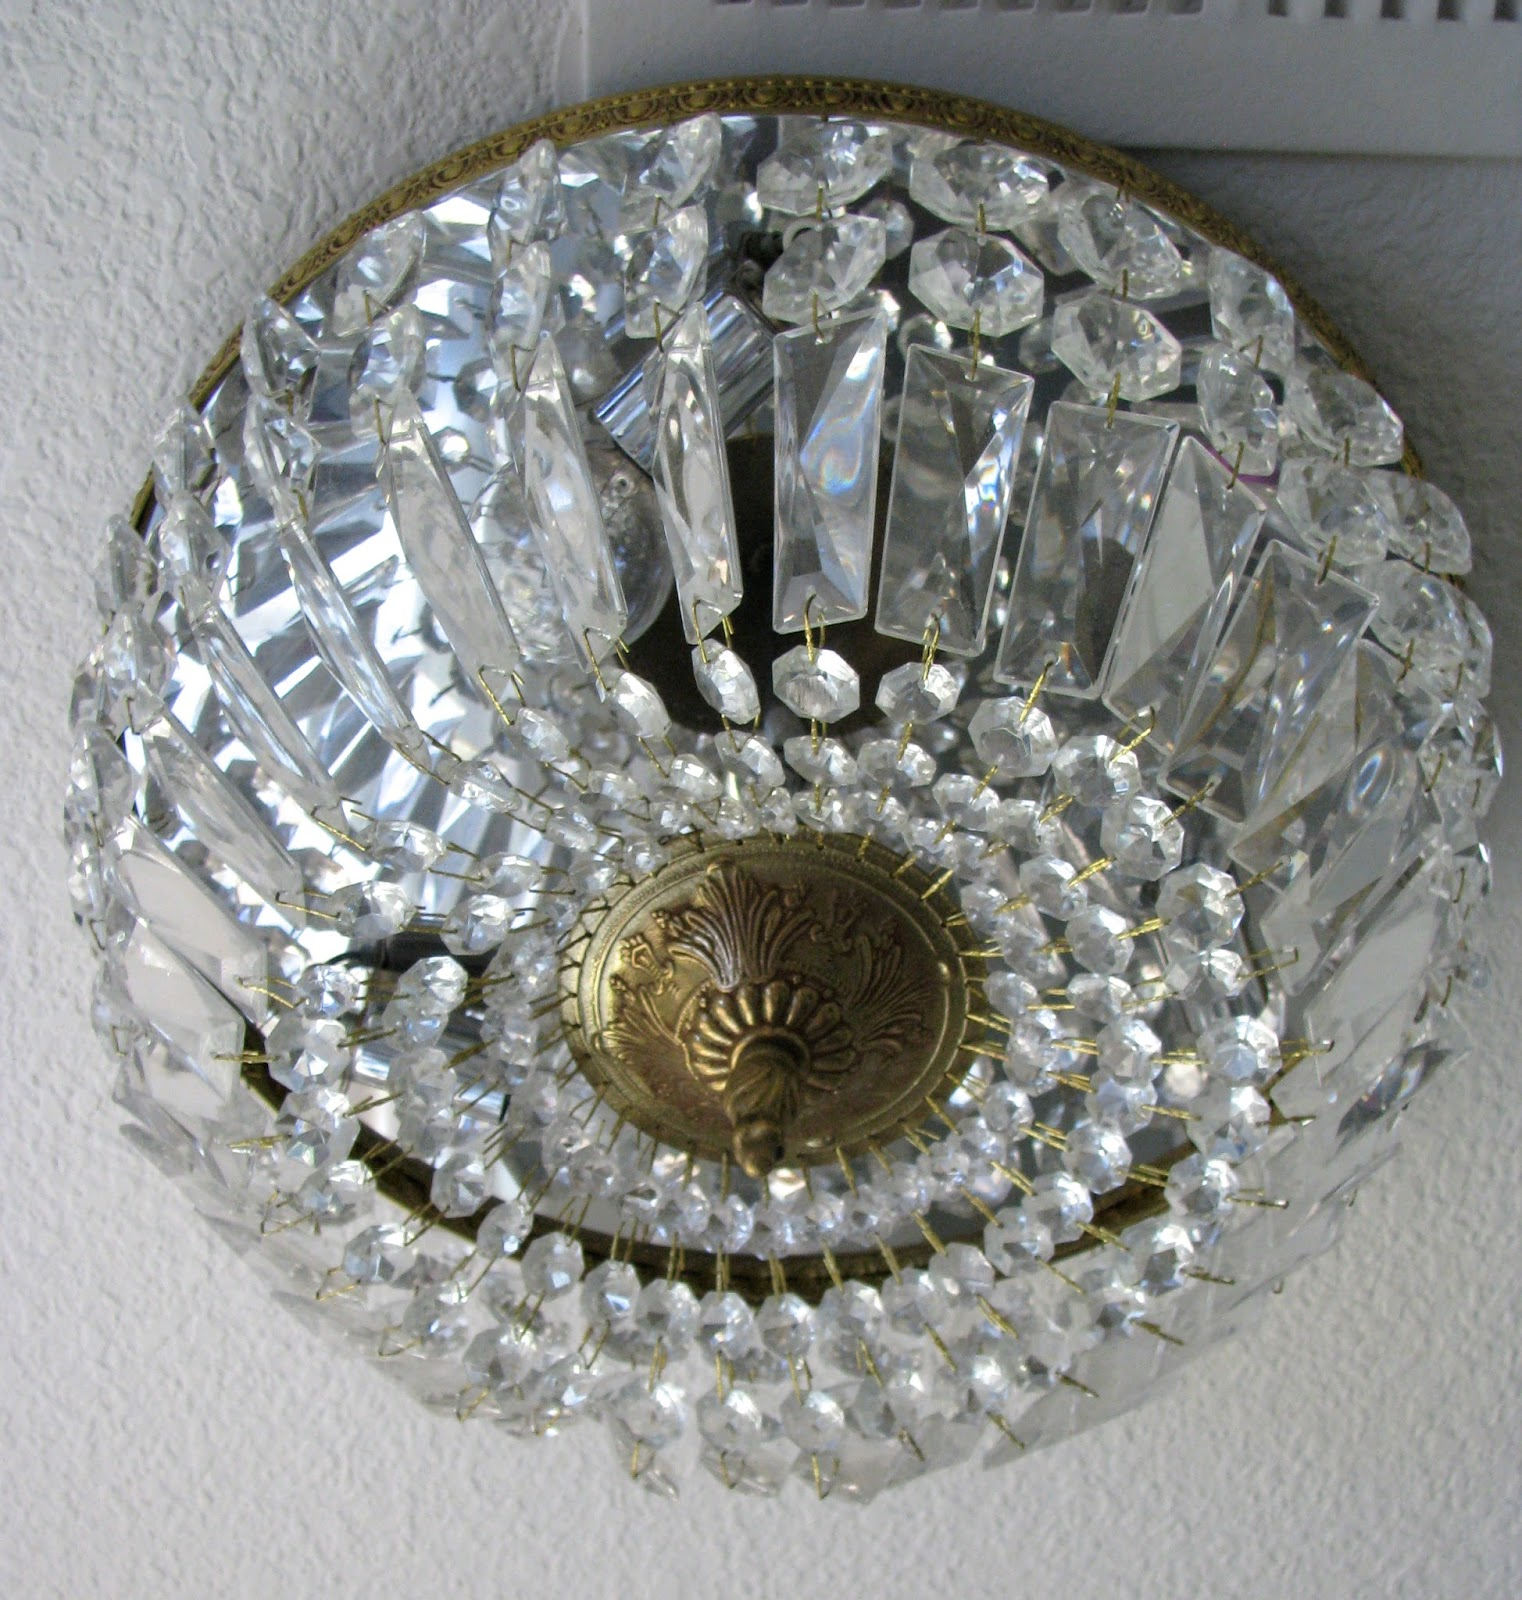 It Is A Flush Mount Gold And Crystal Light Fixture That Holds Three Bulbs Has Mirrored Top Puts Off Such Pretty Bright